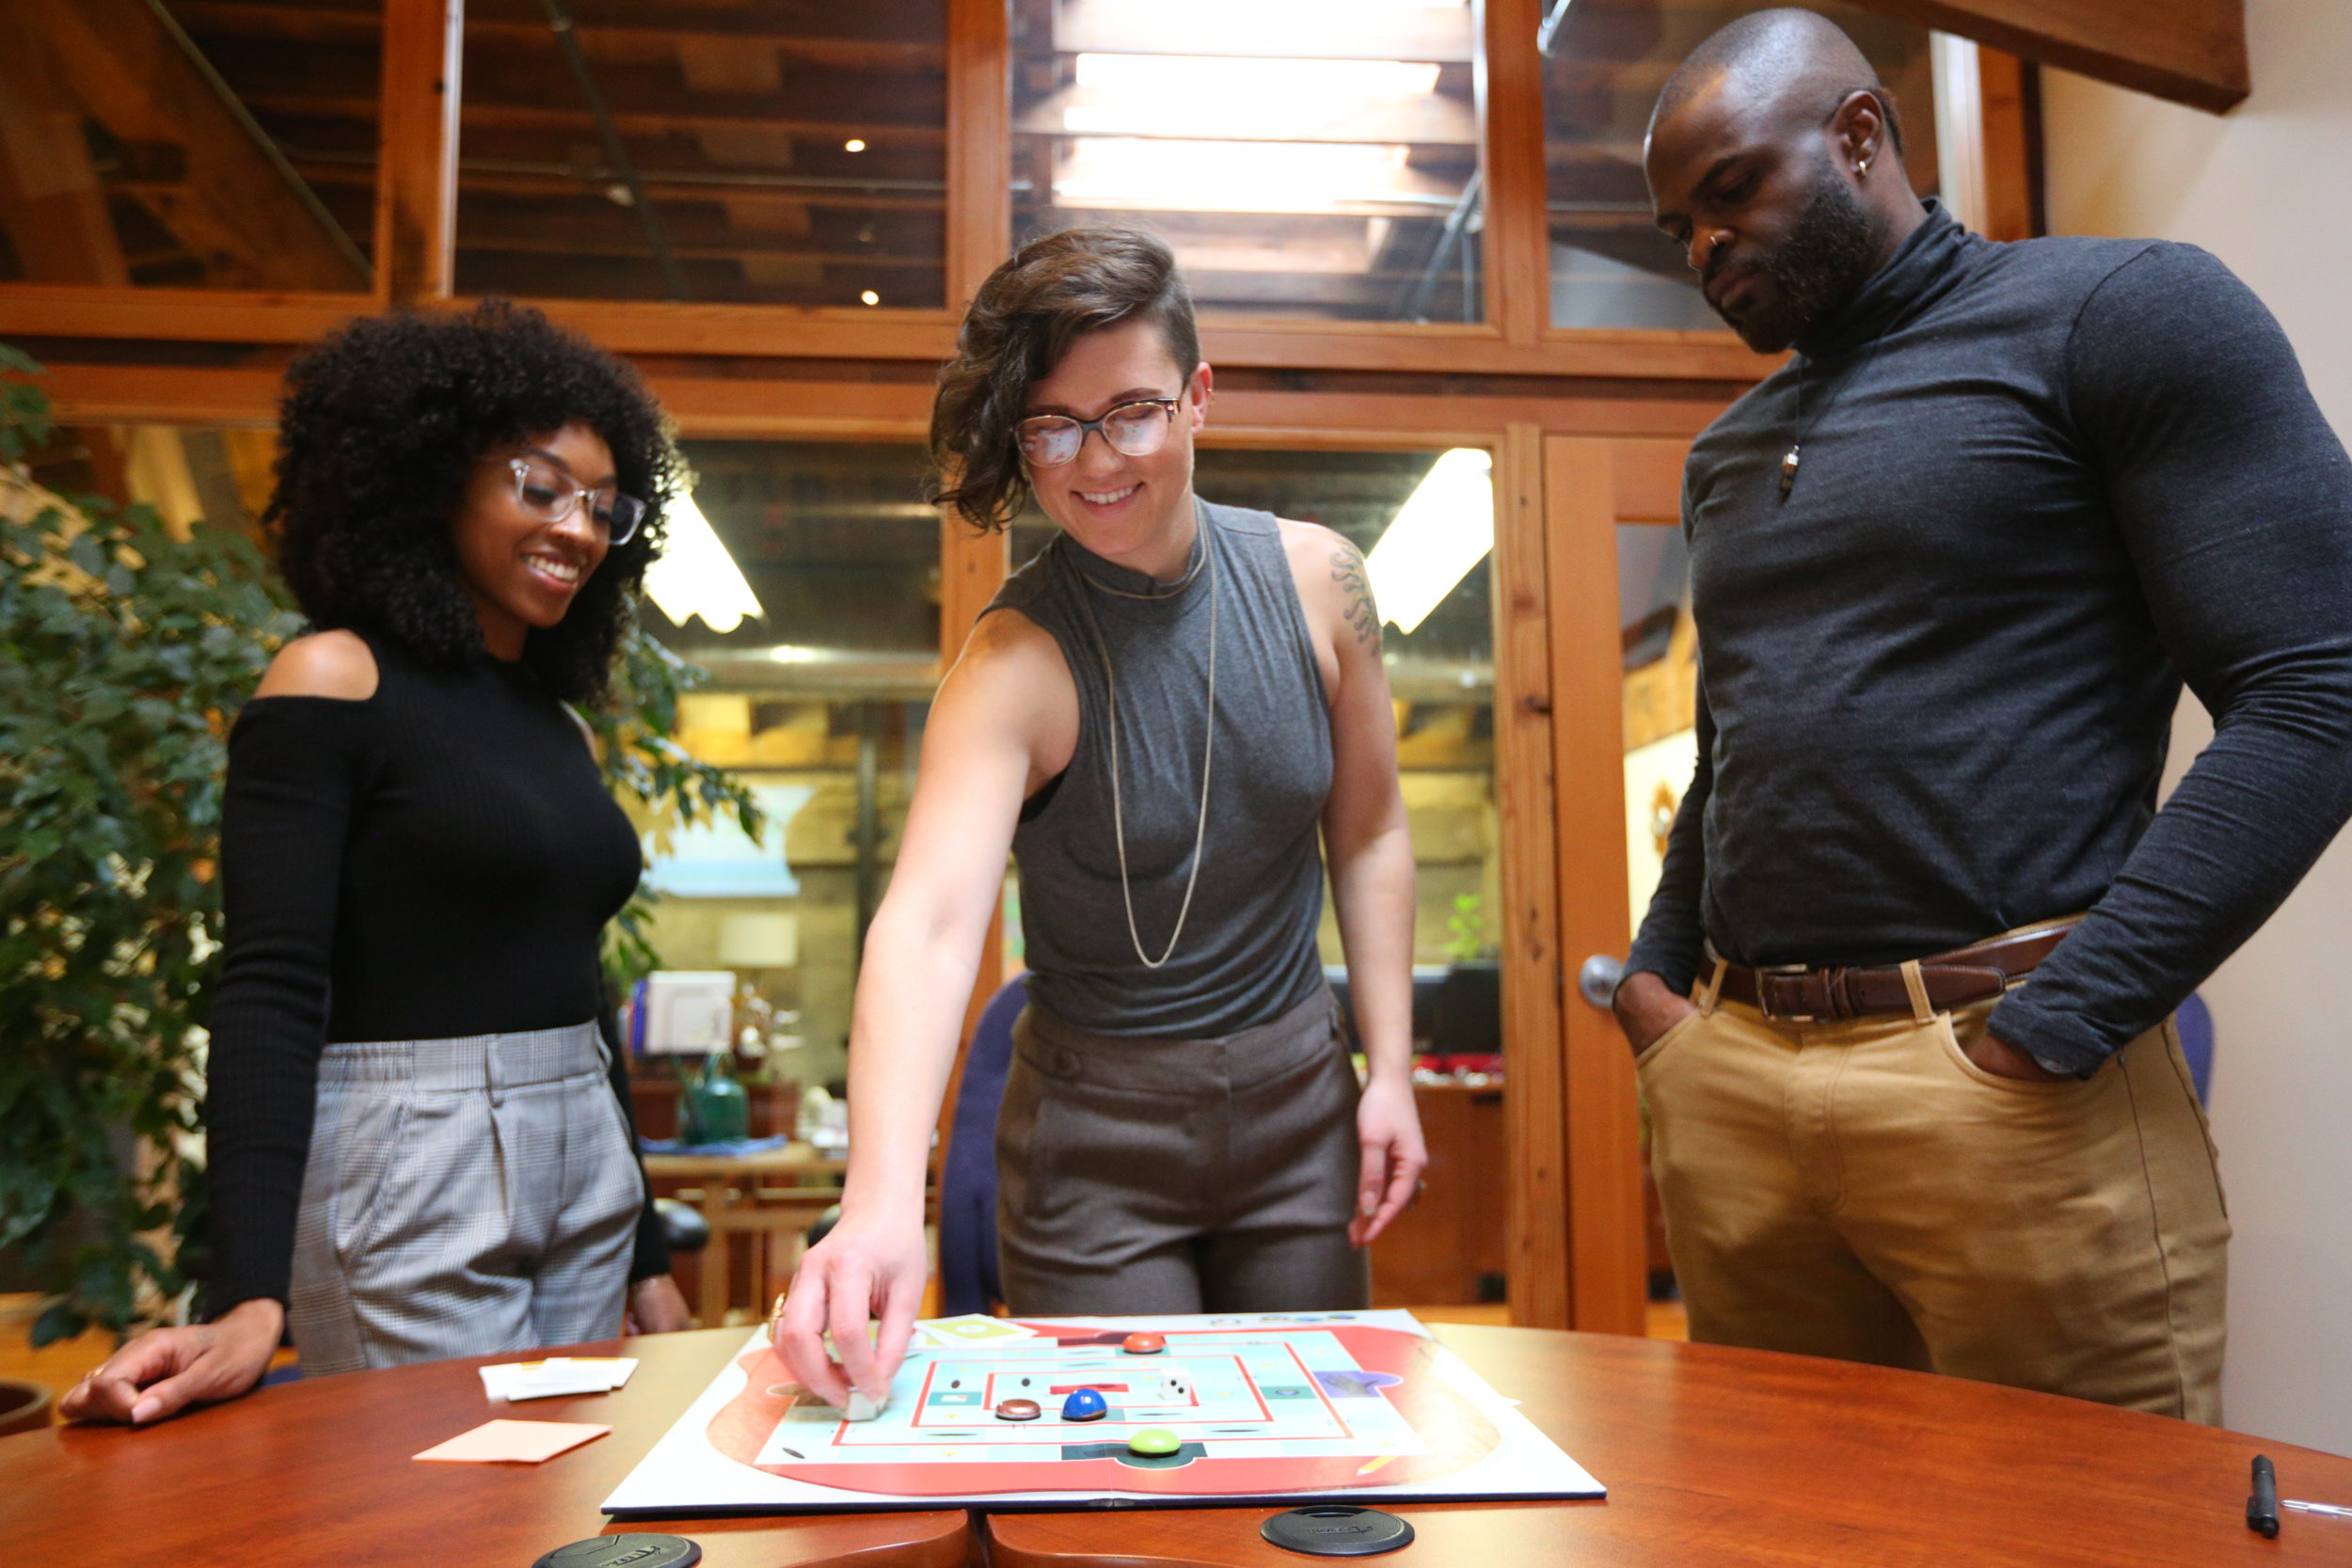 Fellows playing a cooperative board game that is designed to simulate common experiences and barriers faced upon entering the social sector.